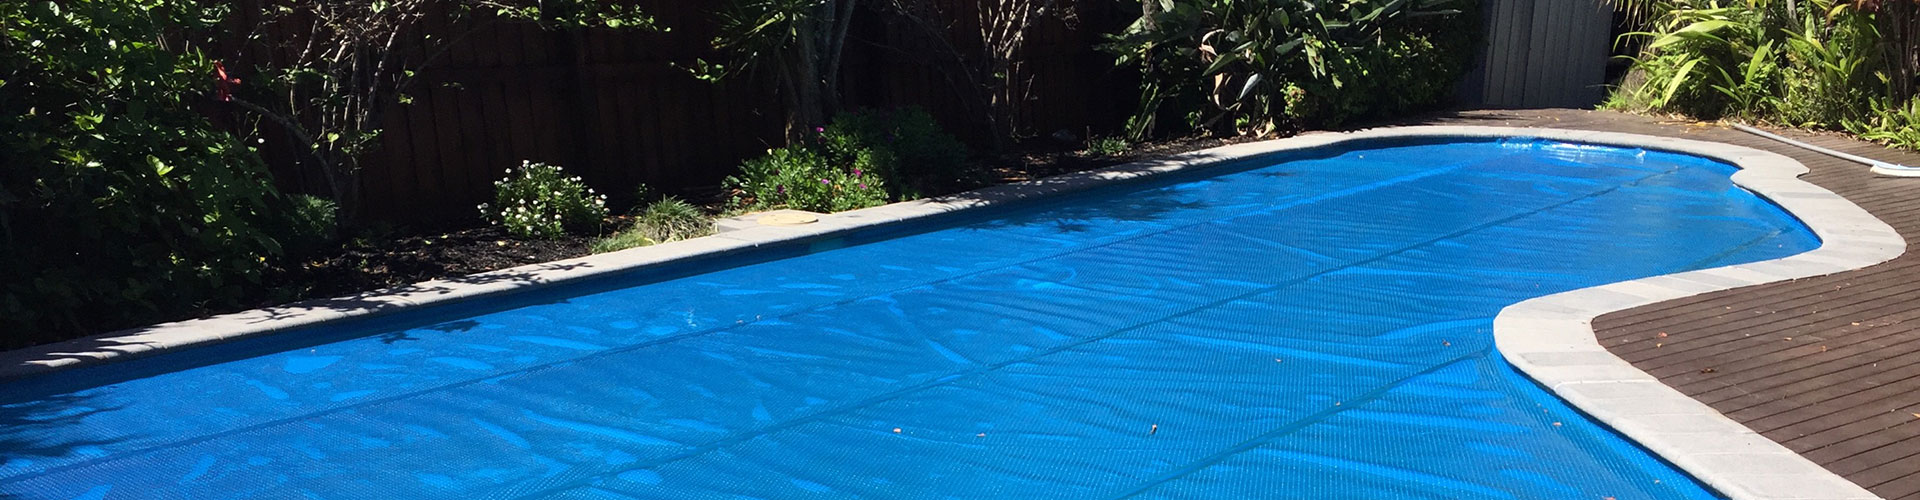 Pool Cover Mythbusters